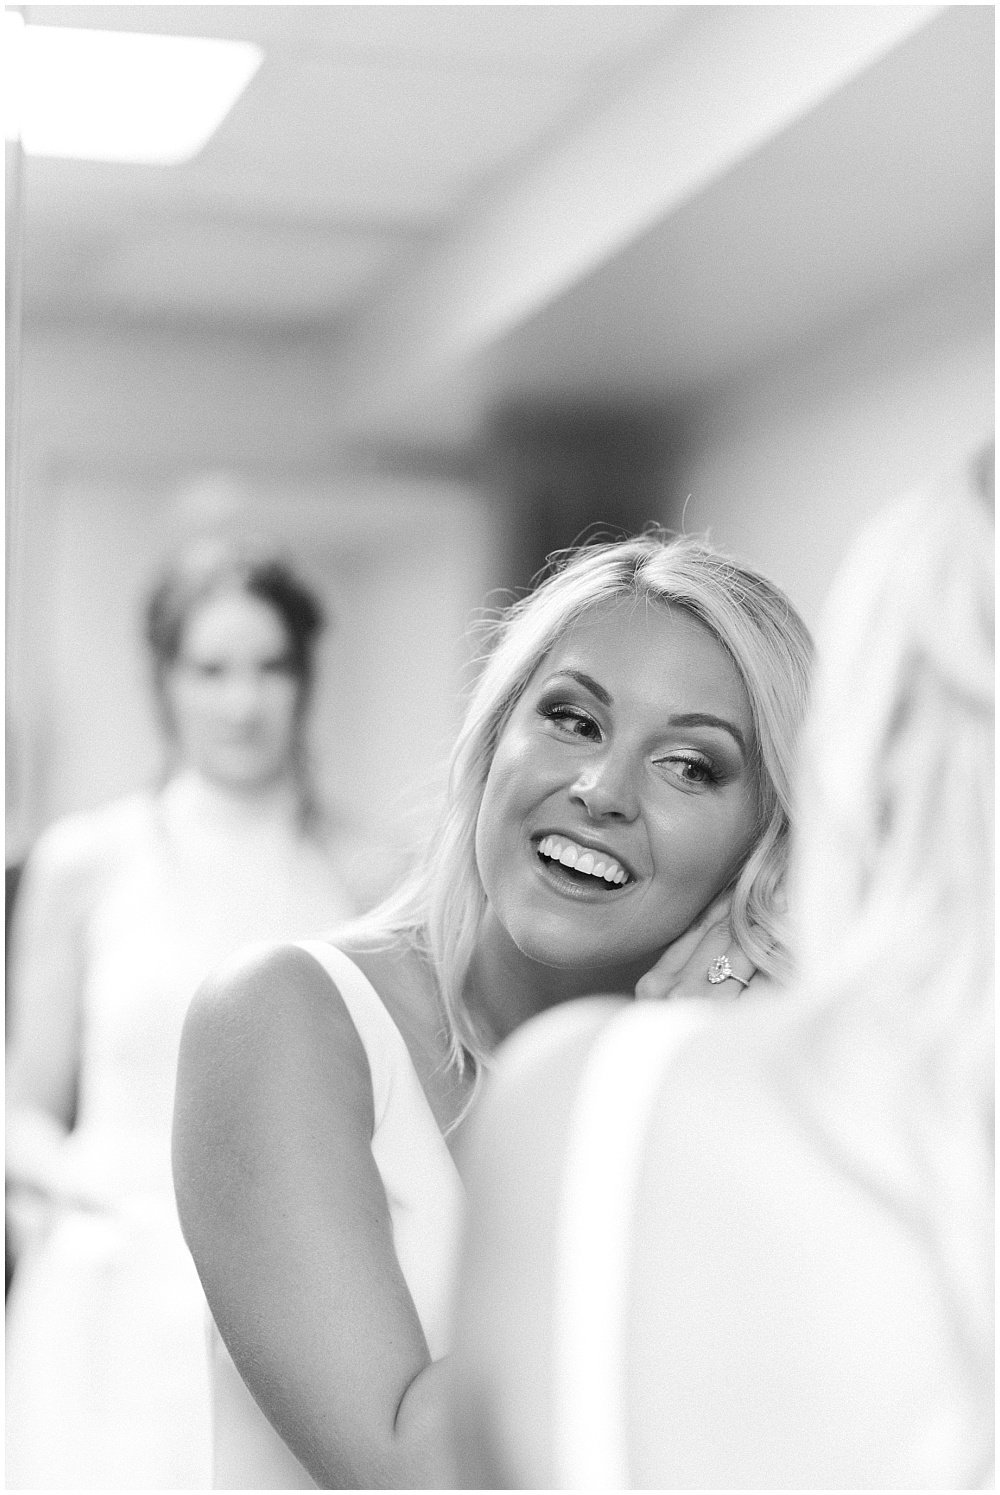 NFL-Player-Nick-Martin-Indianapolis-Indiana-Wedding-The-Knot-Featured-Jessica-Dum-Wedding-Coordination-photo__0004